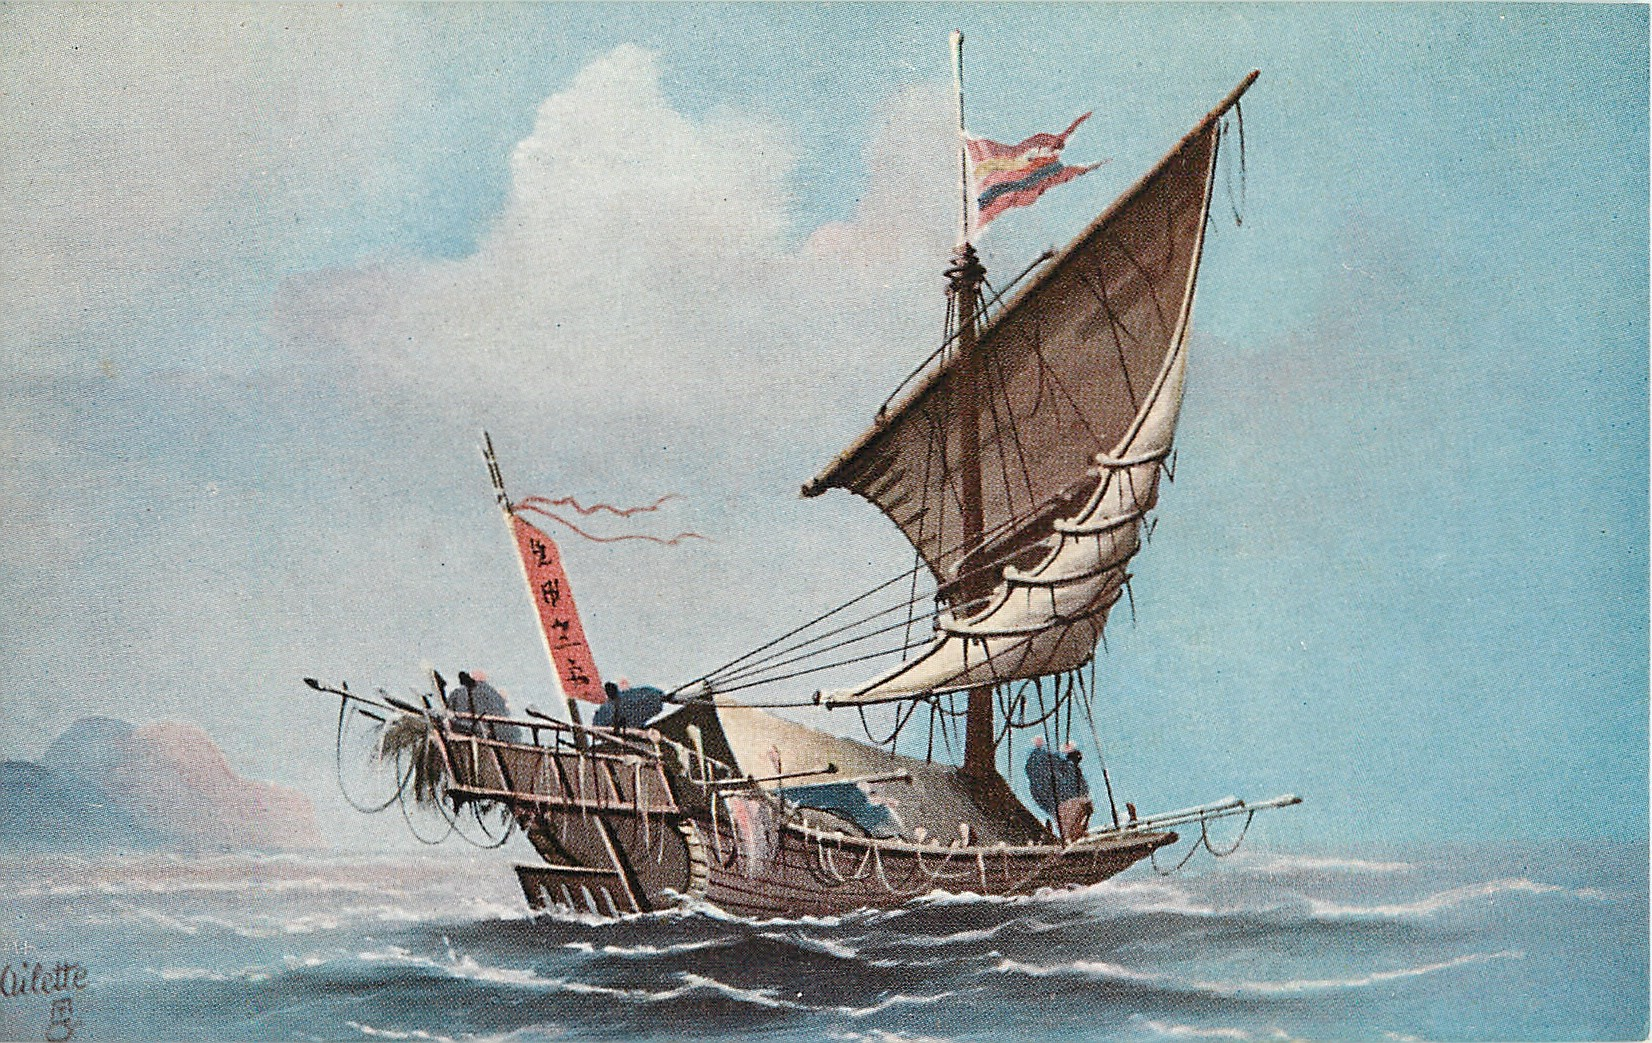 junk under sail to right, flying  flag with Chinese characters